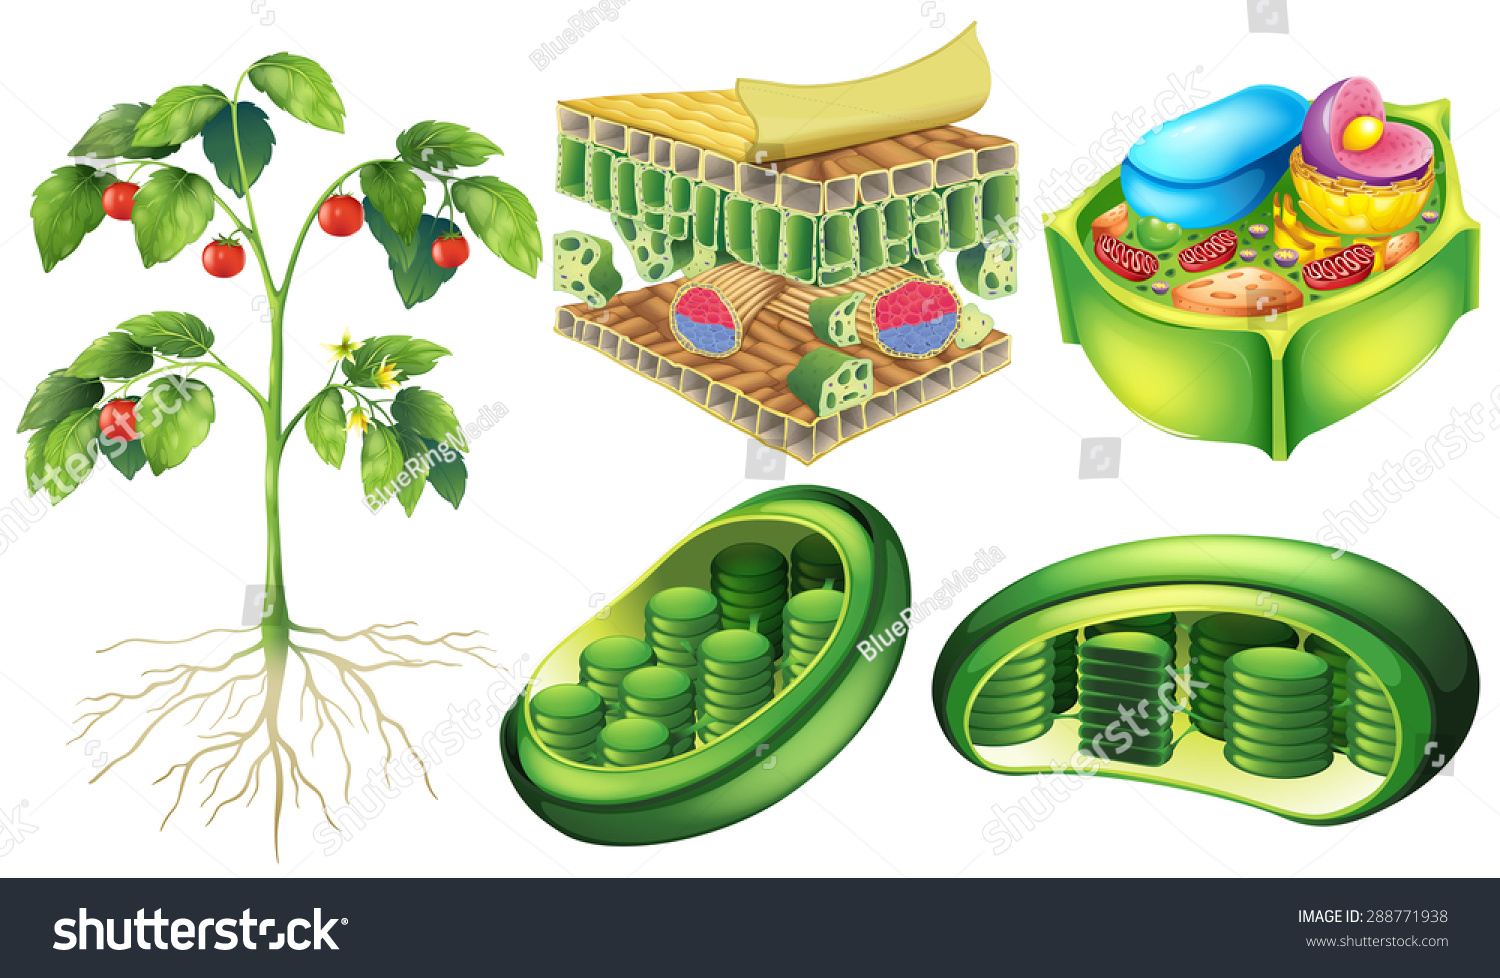 Poster Illustrating Plant Cell Anatomy Stock Vector 288771938 ...